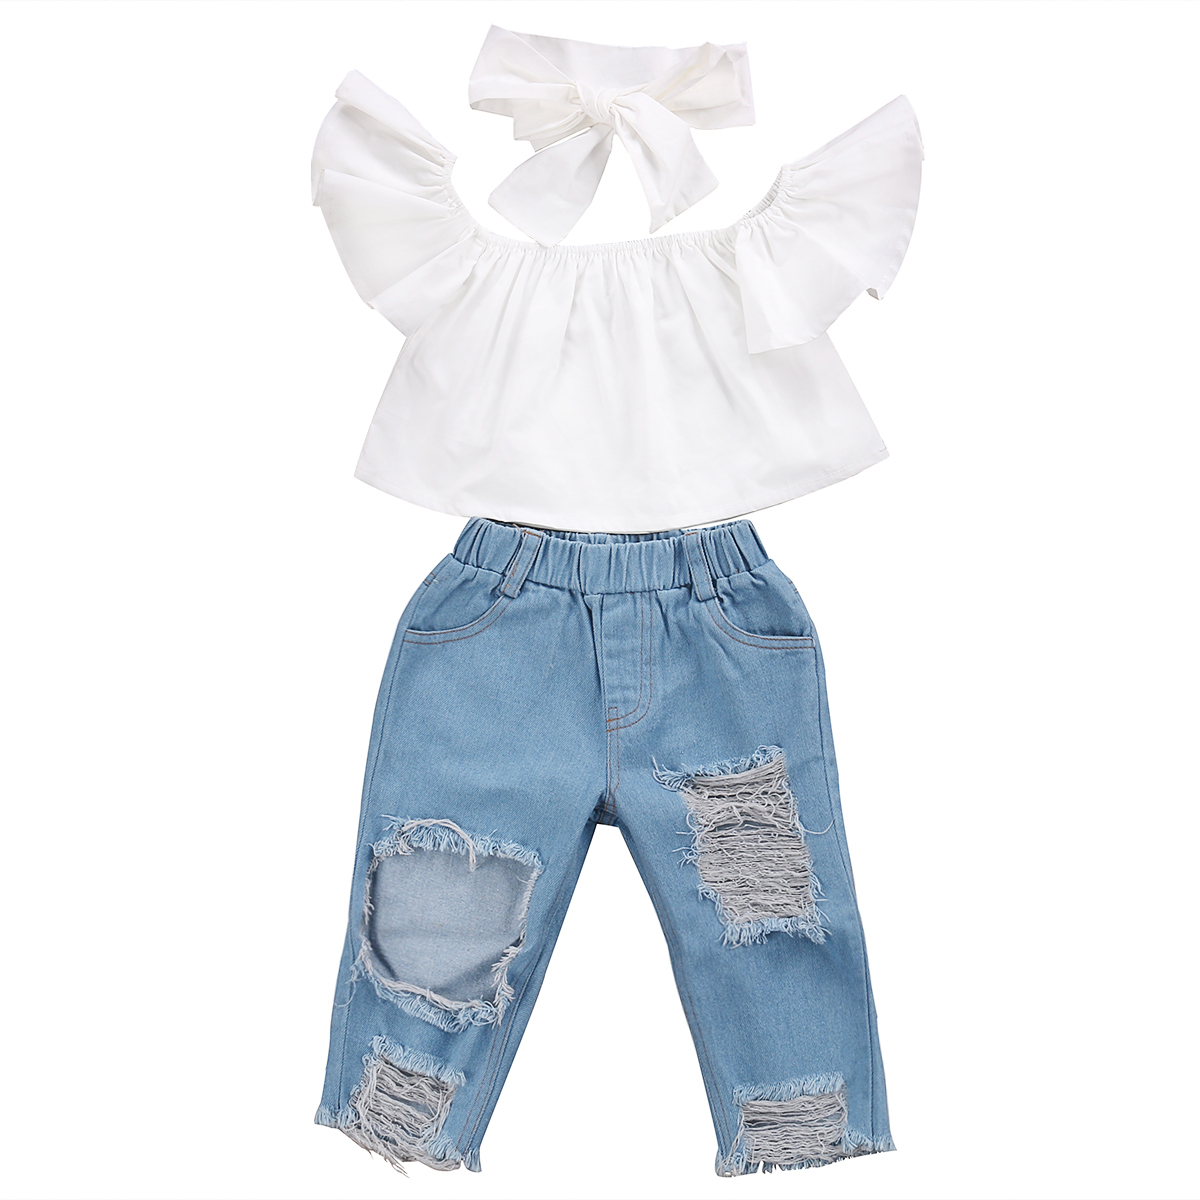 Girl Off Shoulder Tops Short Sleeve Denim Pants Jeans Headbands 3pcs Outfits Set Clothing Toddler Girls Kids Clothes Sets girls tops cute pants outfit clothes newborn kids baby girl clothing sets summer off shoulder striped short sleeve 1 6t